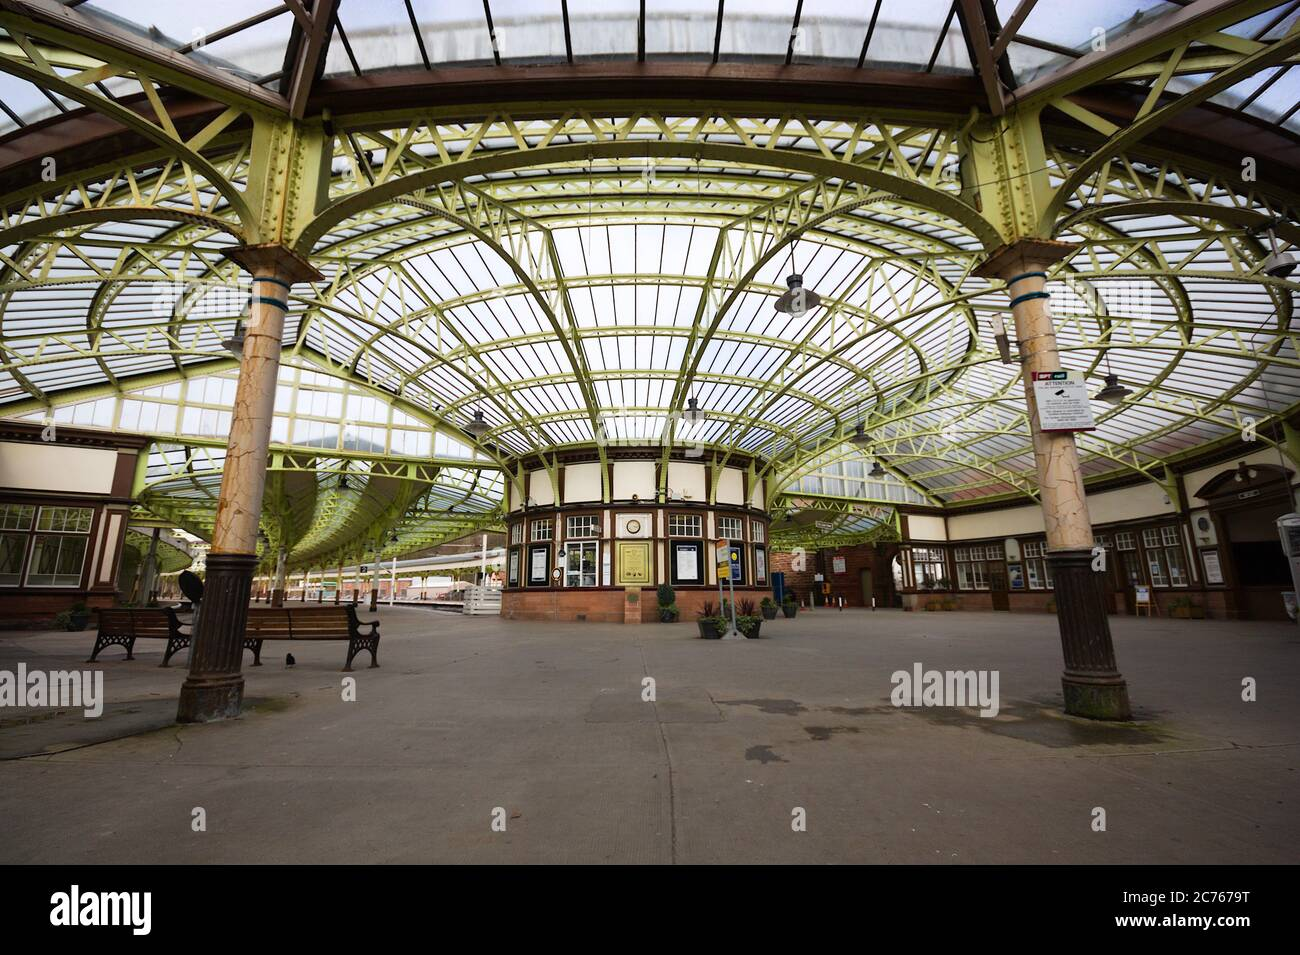 "Wemyss Bay railway Station showing the ornate design of the station canopy as it was in 2010. Wemyss is pronounced like ""whims"". Scotland, UK Stock Photo"